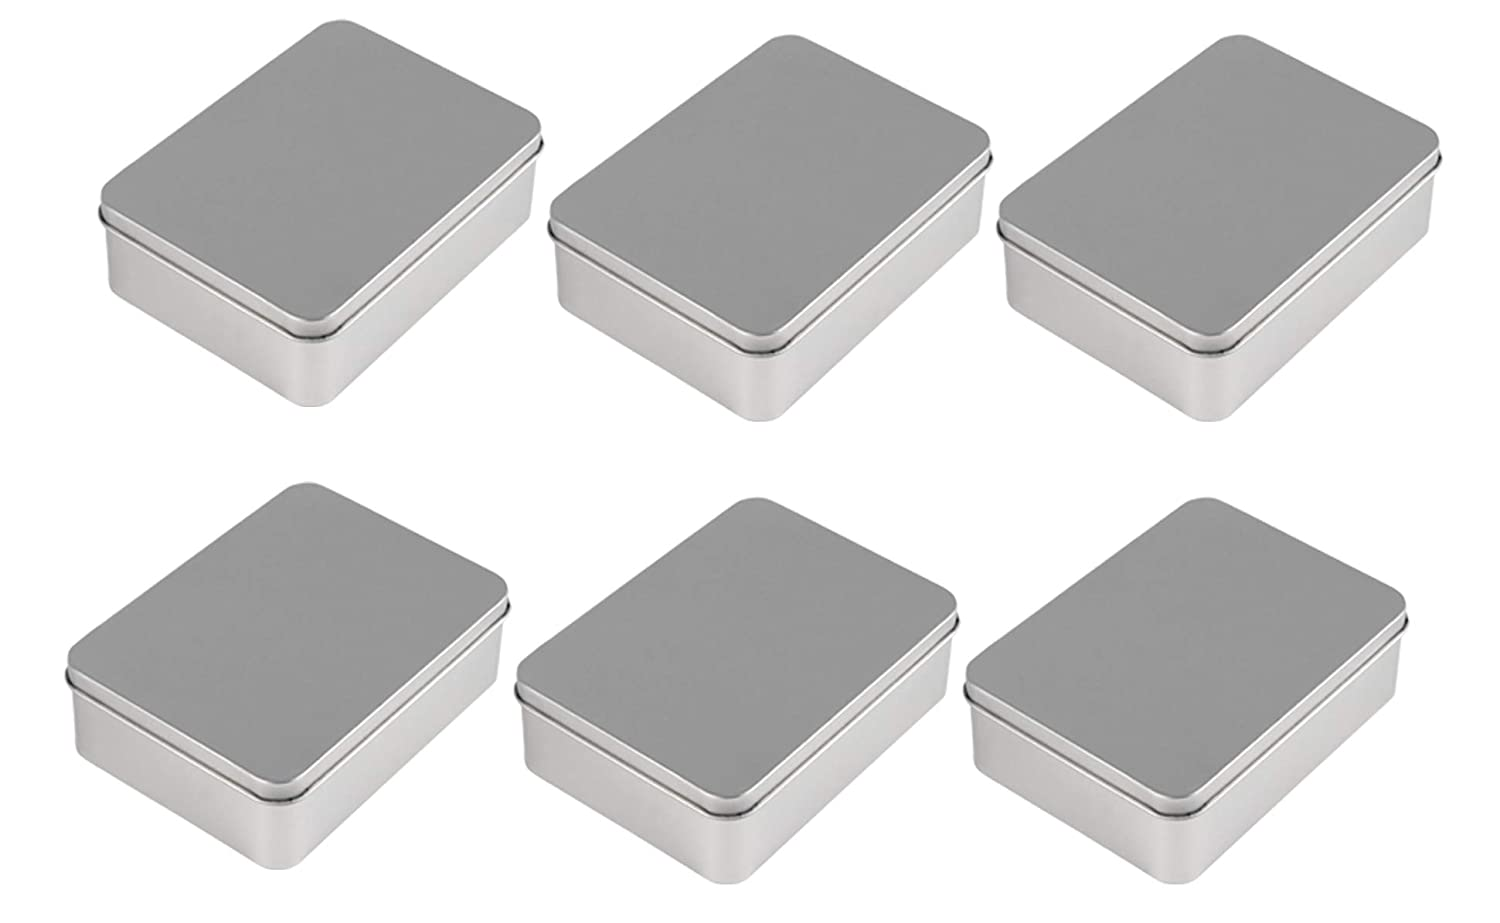 Juvale Rectangular Tin Box with Lid - 6-Pack Empty Tin Can Storage Container for Treats, Gifts, Favors and Crafts, Gold, 4.9 x 3.7 x 1.6 Inches